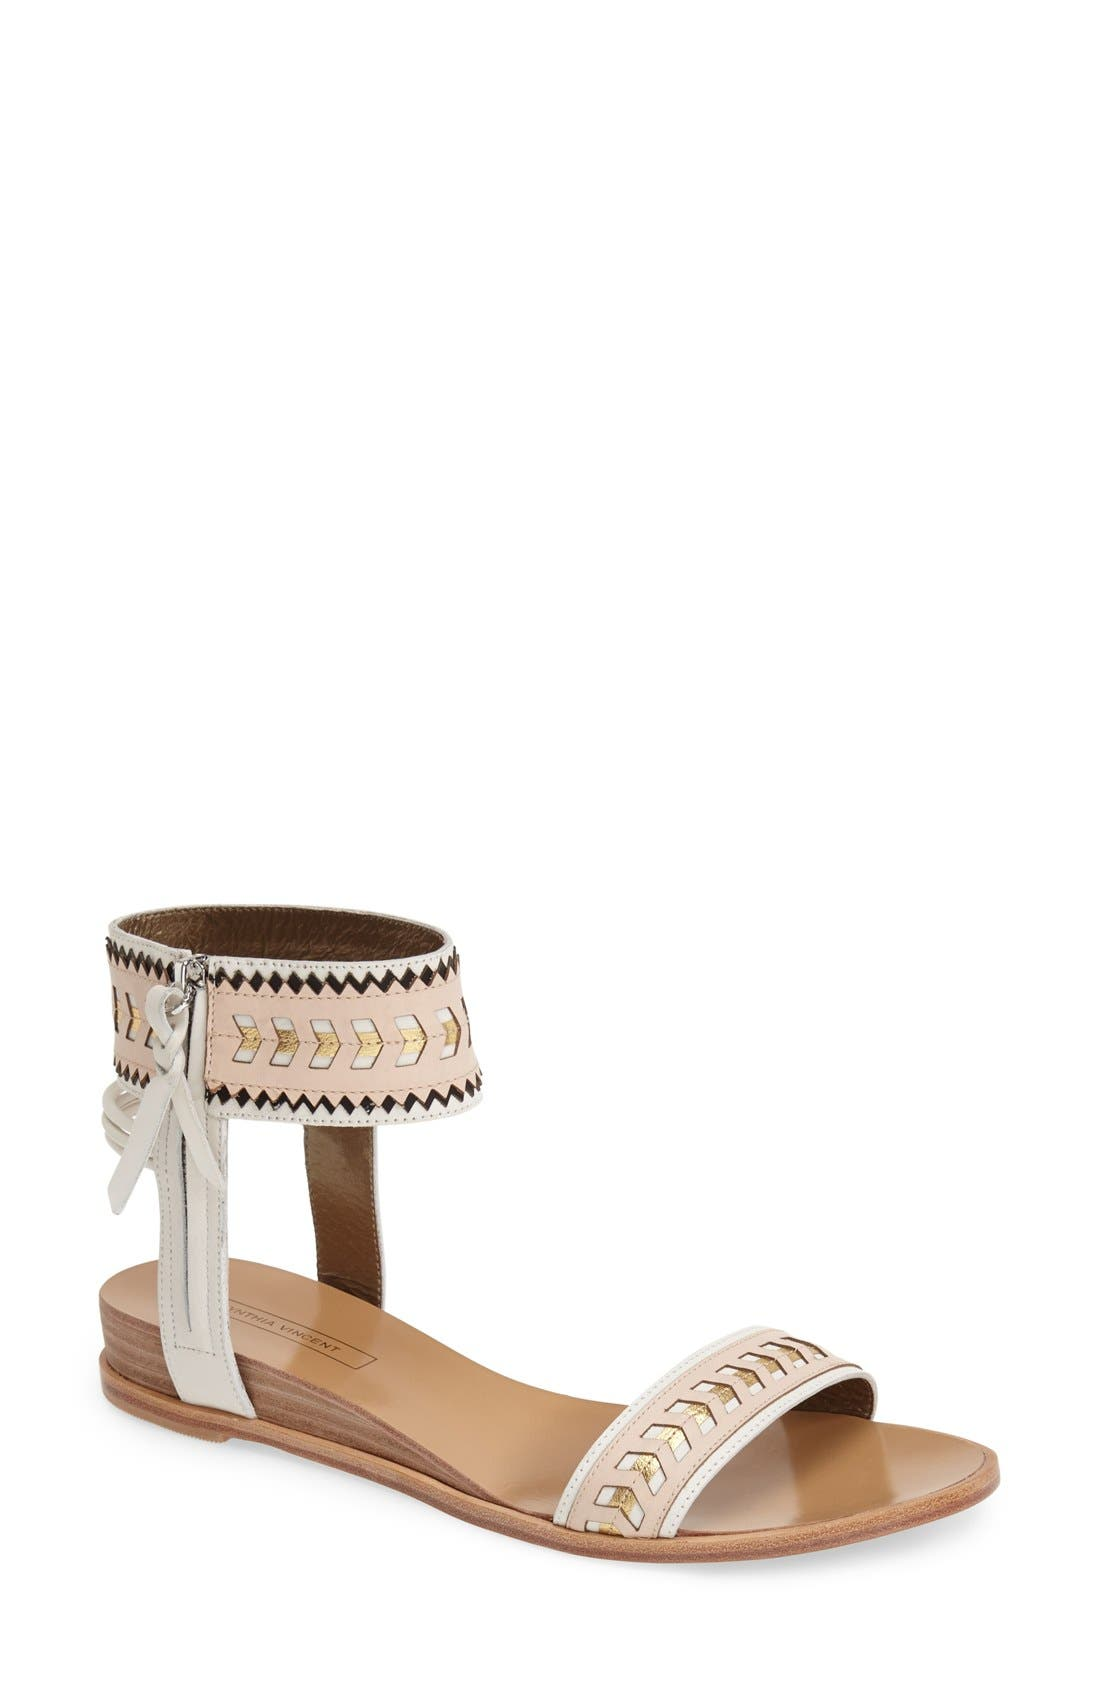 Alternate Image 1 Selected - Cynthia Vincent 'Fayette' Leather Ankle Strap Sandal (Women)